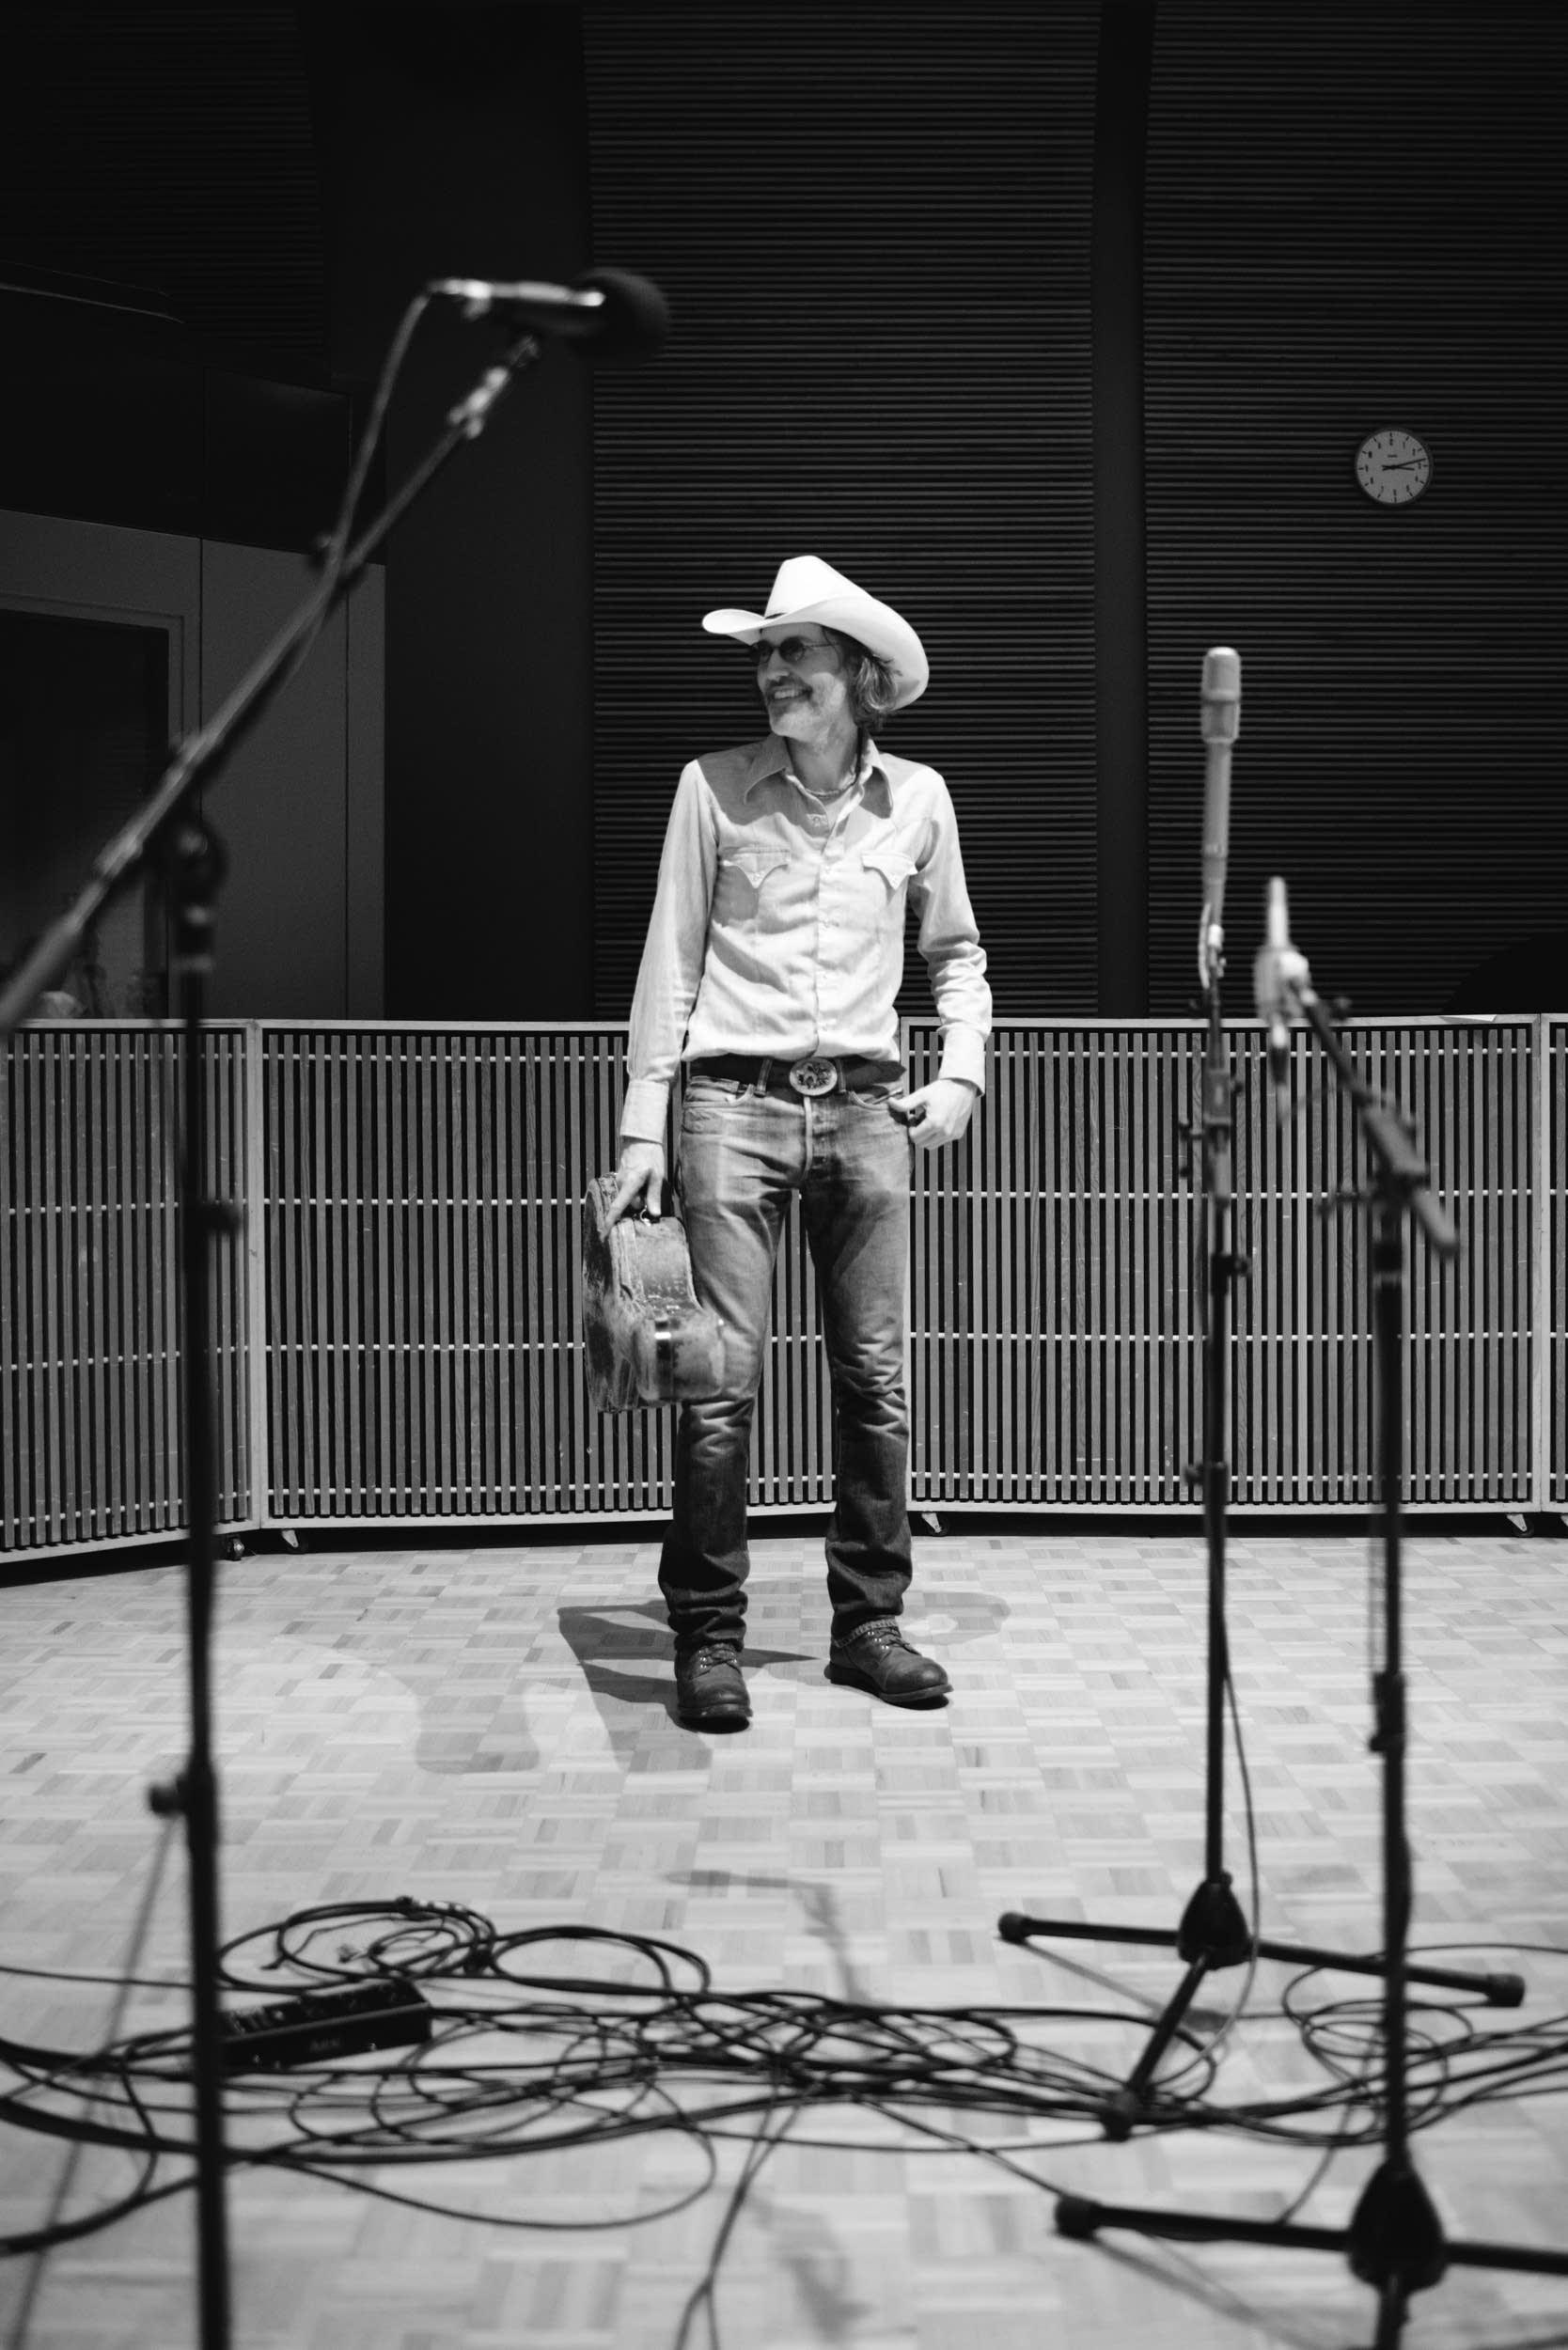 David Rawlings in the studio